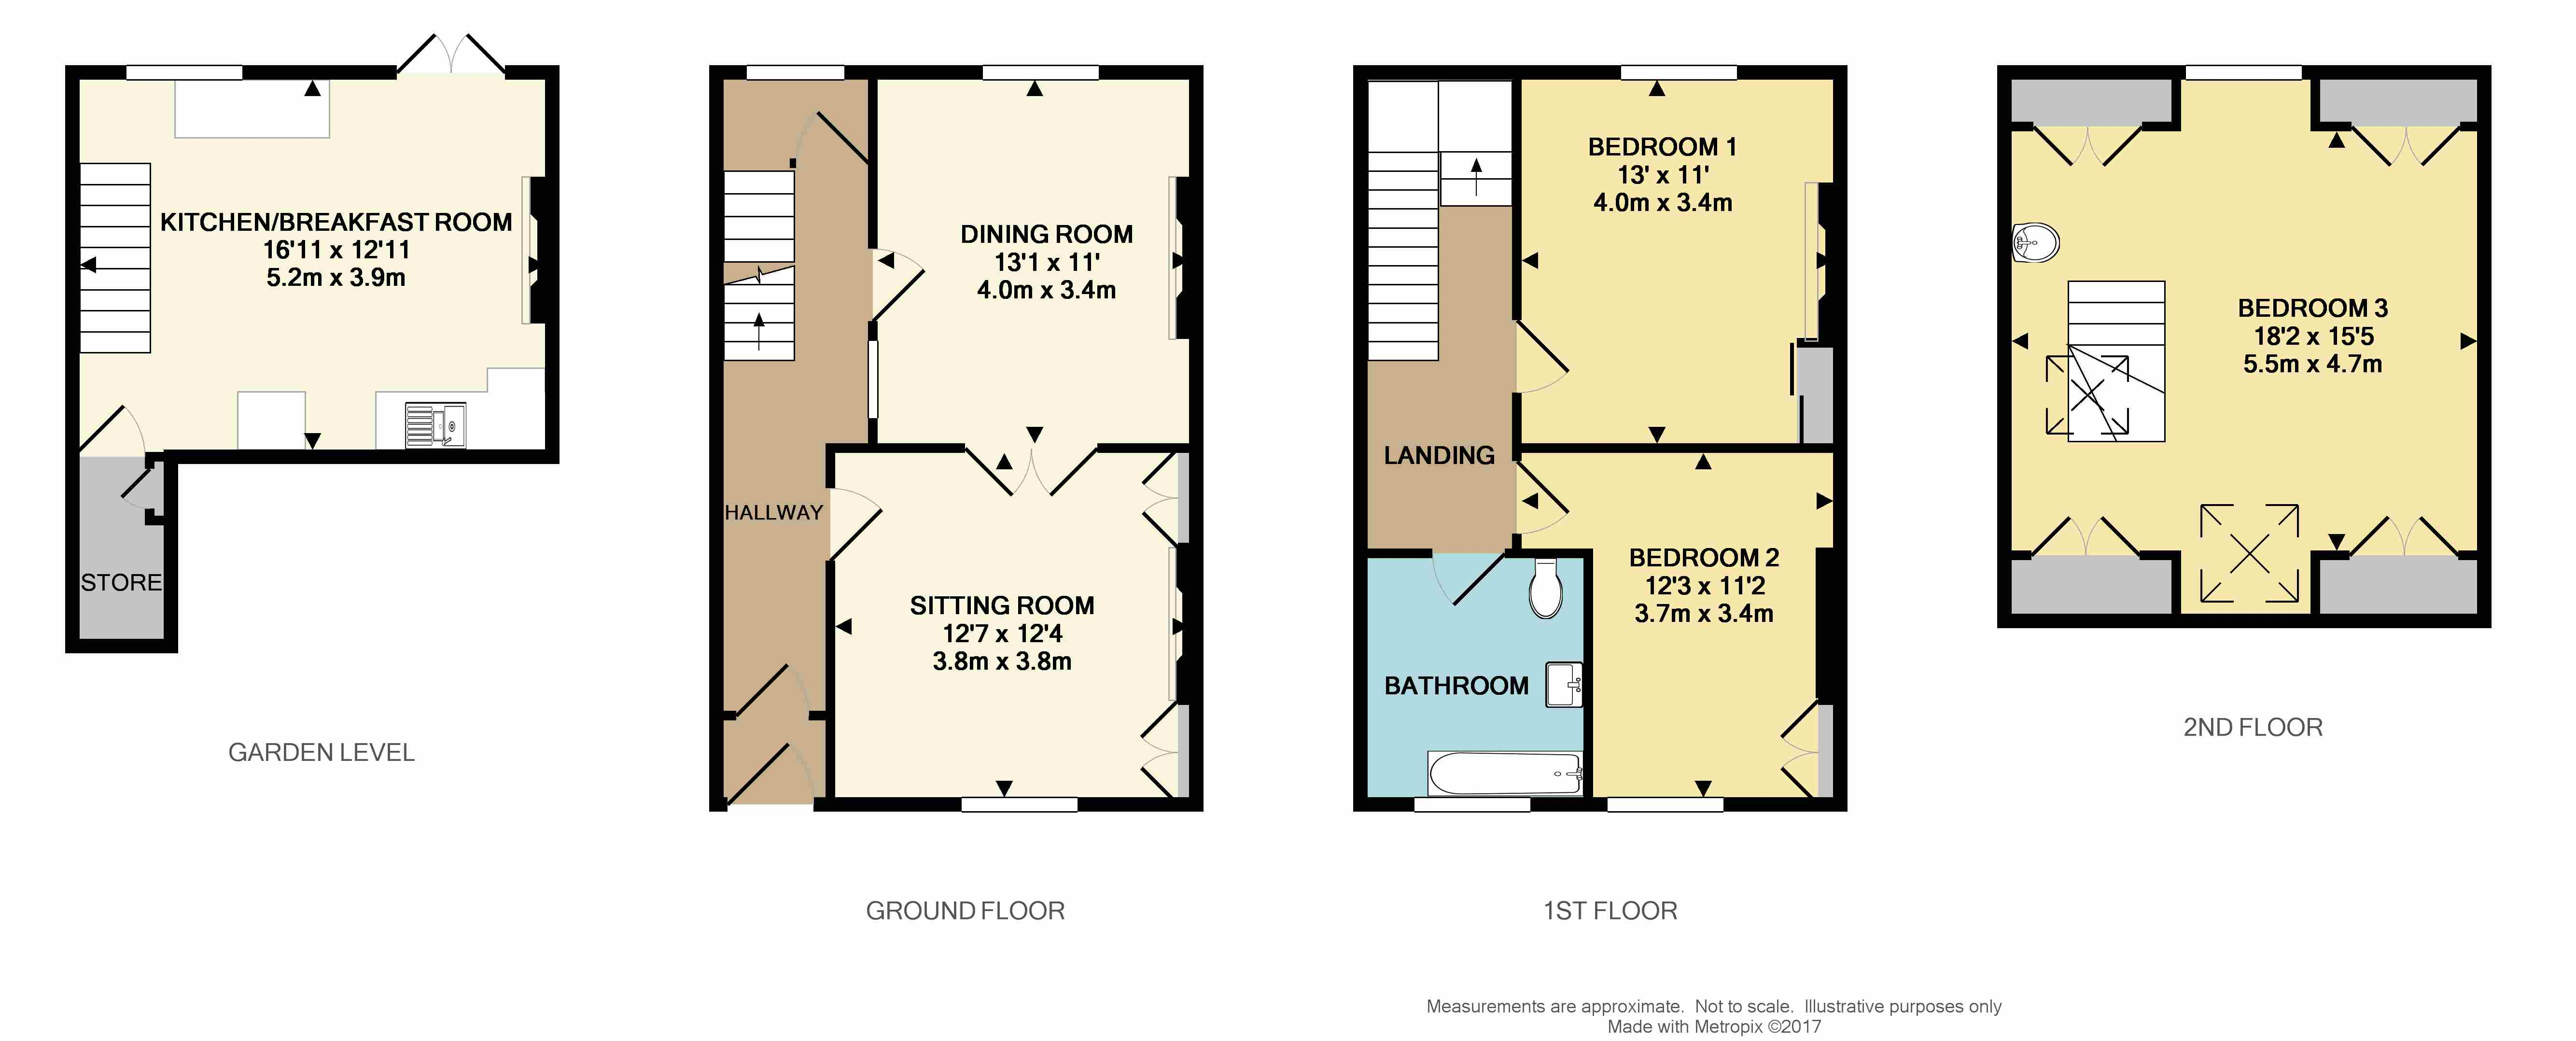 Beaumont Place St Judes Plymouth Pl4 3 Bedroom Terraced